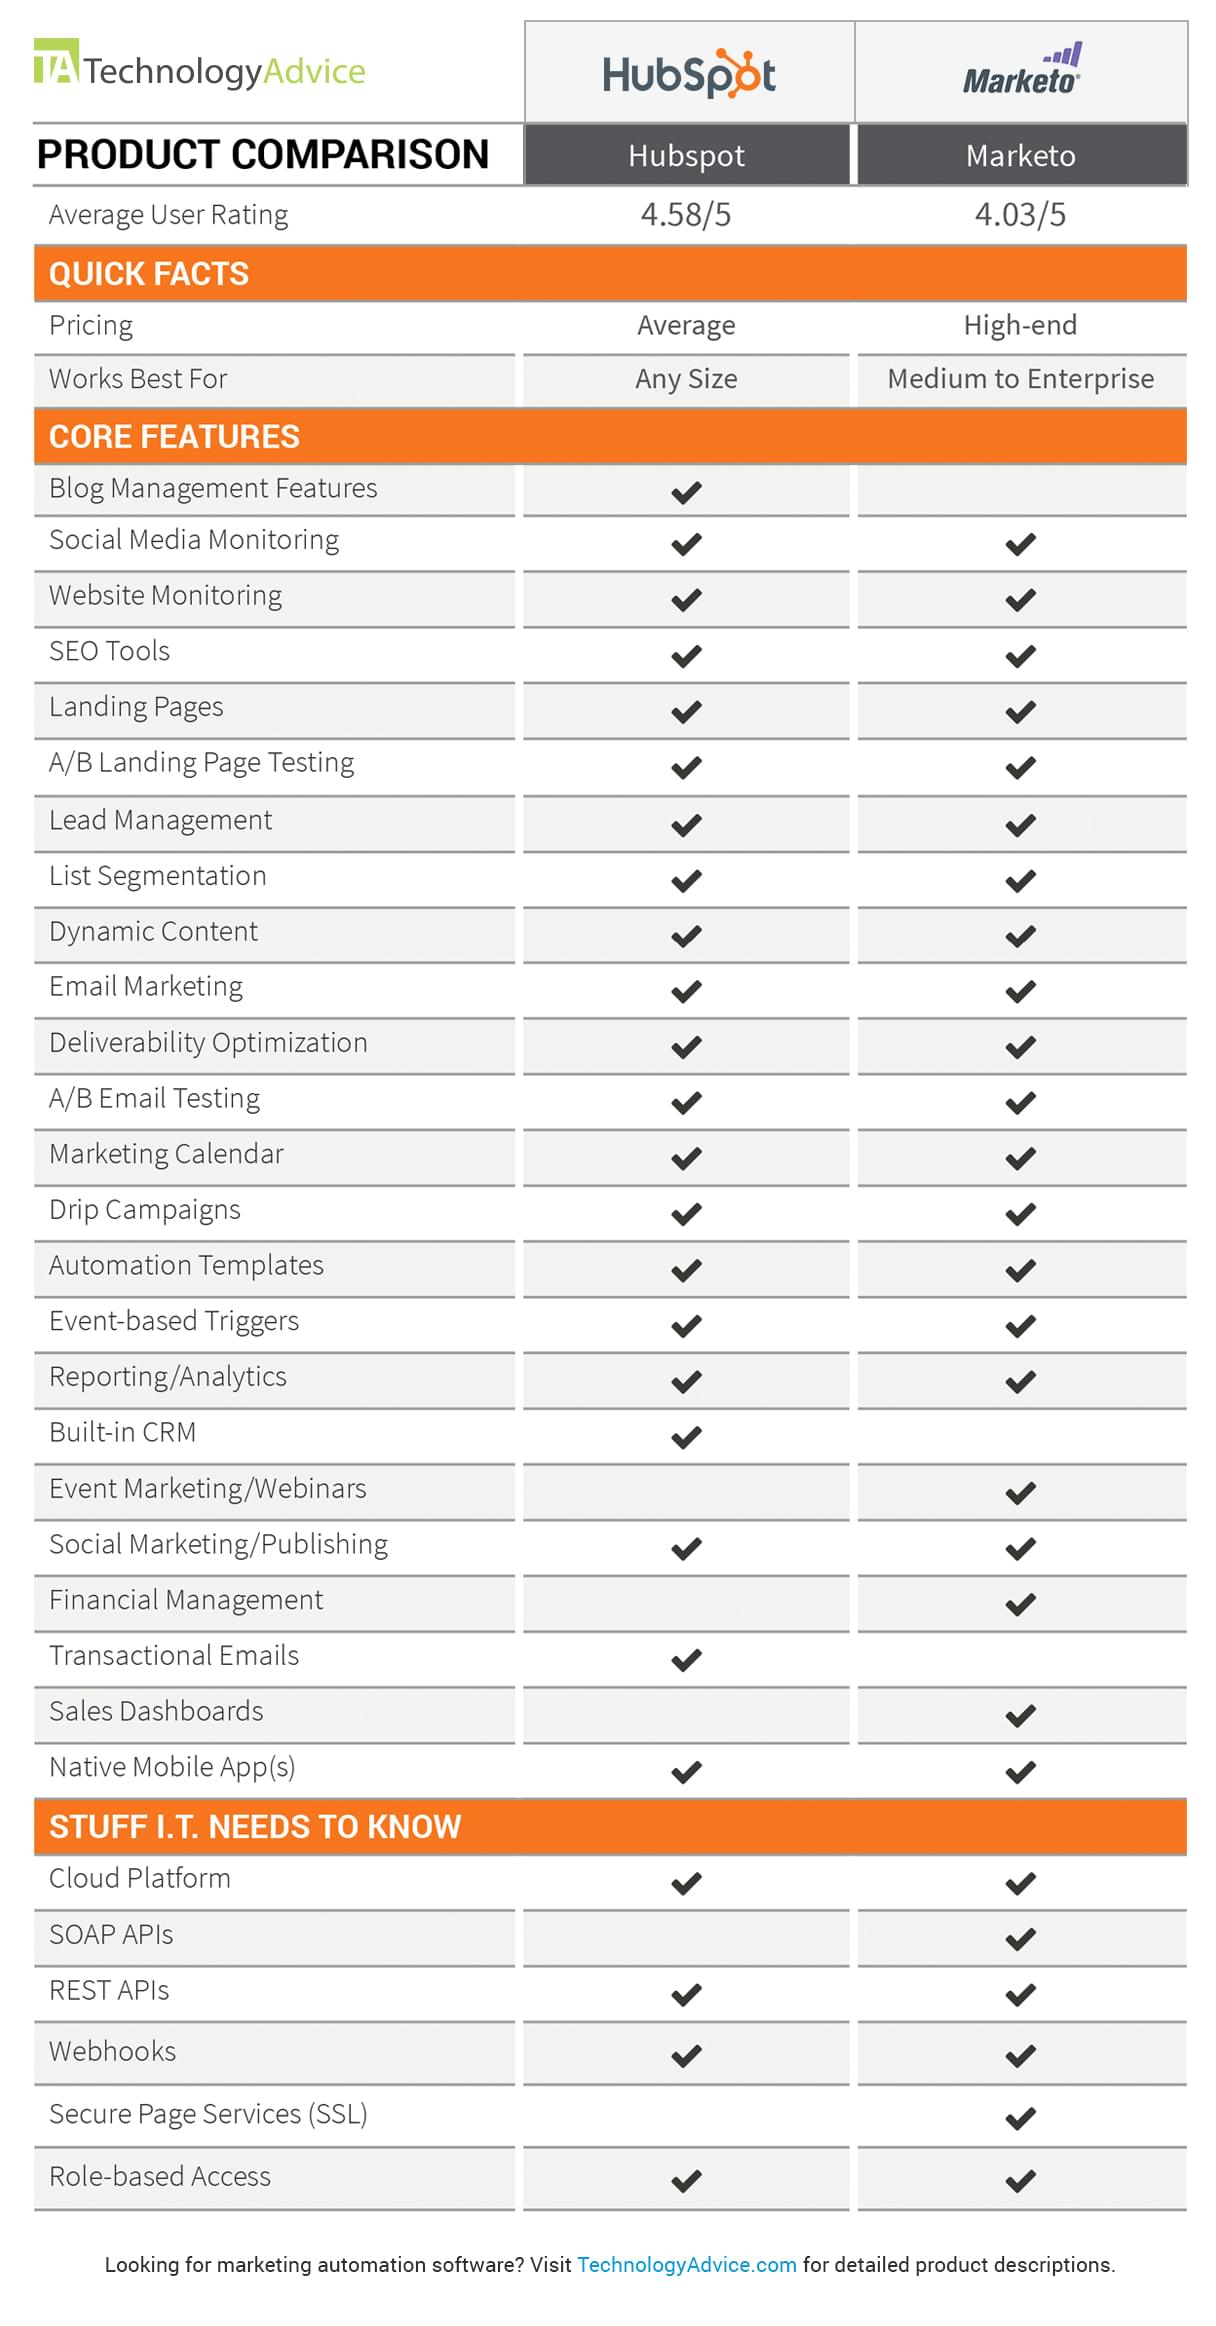 hubspot vs marketo comparison chart